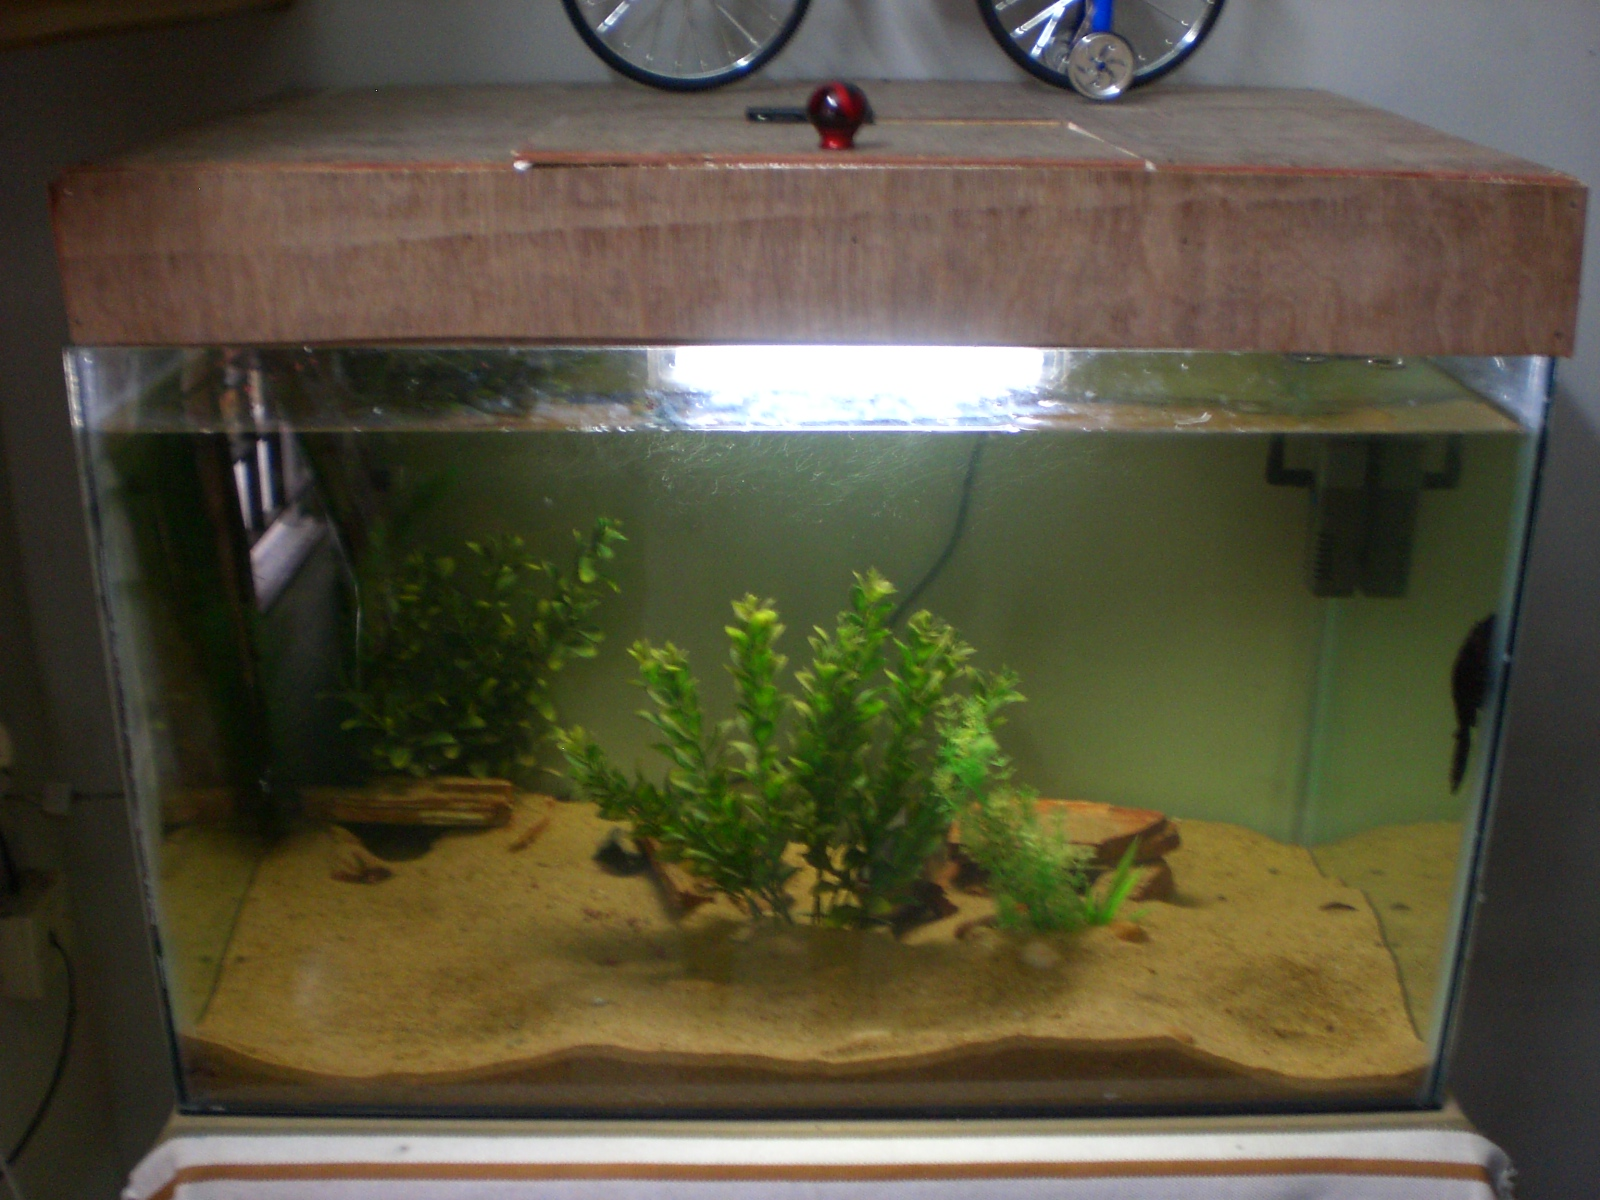 New fish tank models in chennai tank for New fish tank